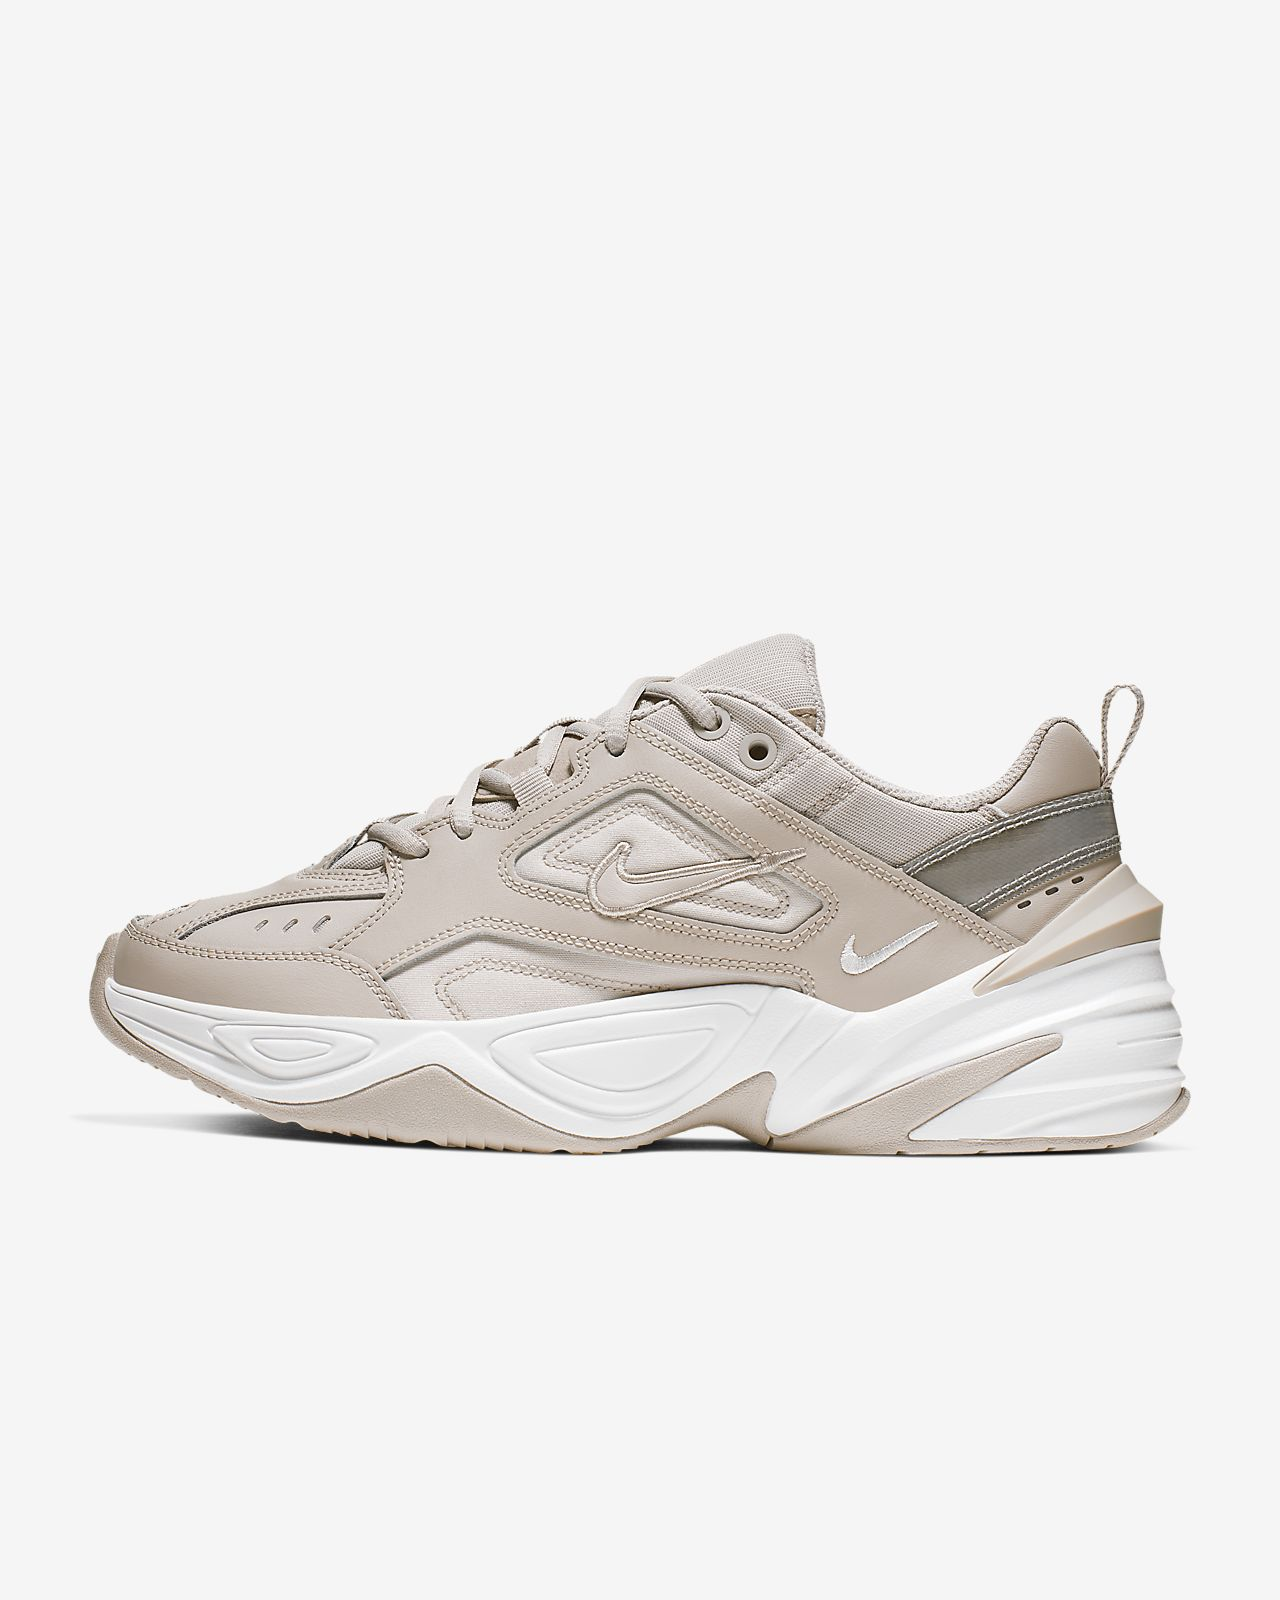 lower price with f1928 7c46b Low Resolution Nike M2K Tekno Shoe Nike M2K Tekno Shoe